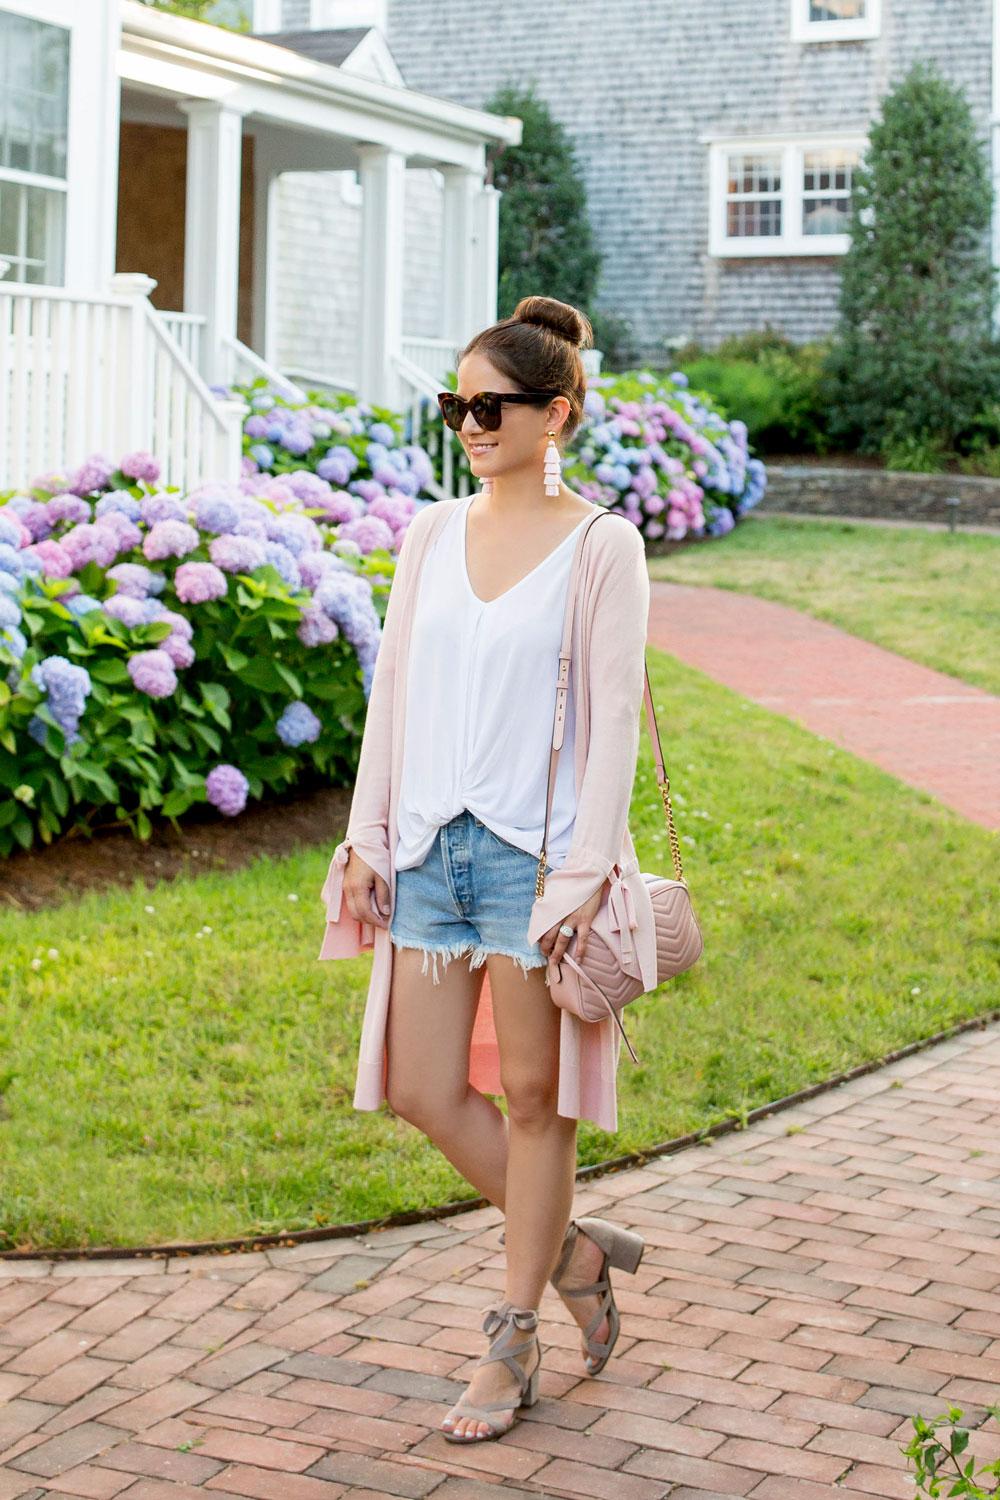 How To Style A White Top